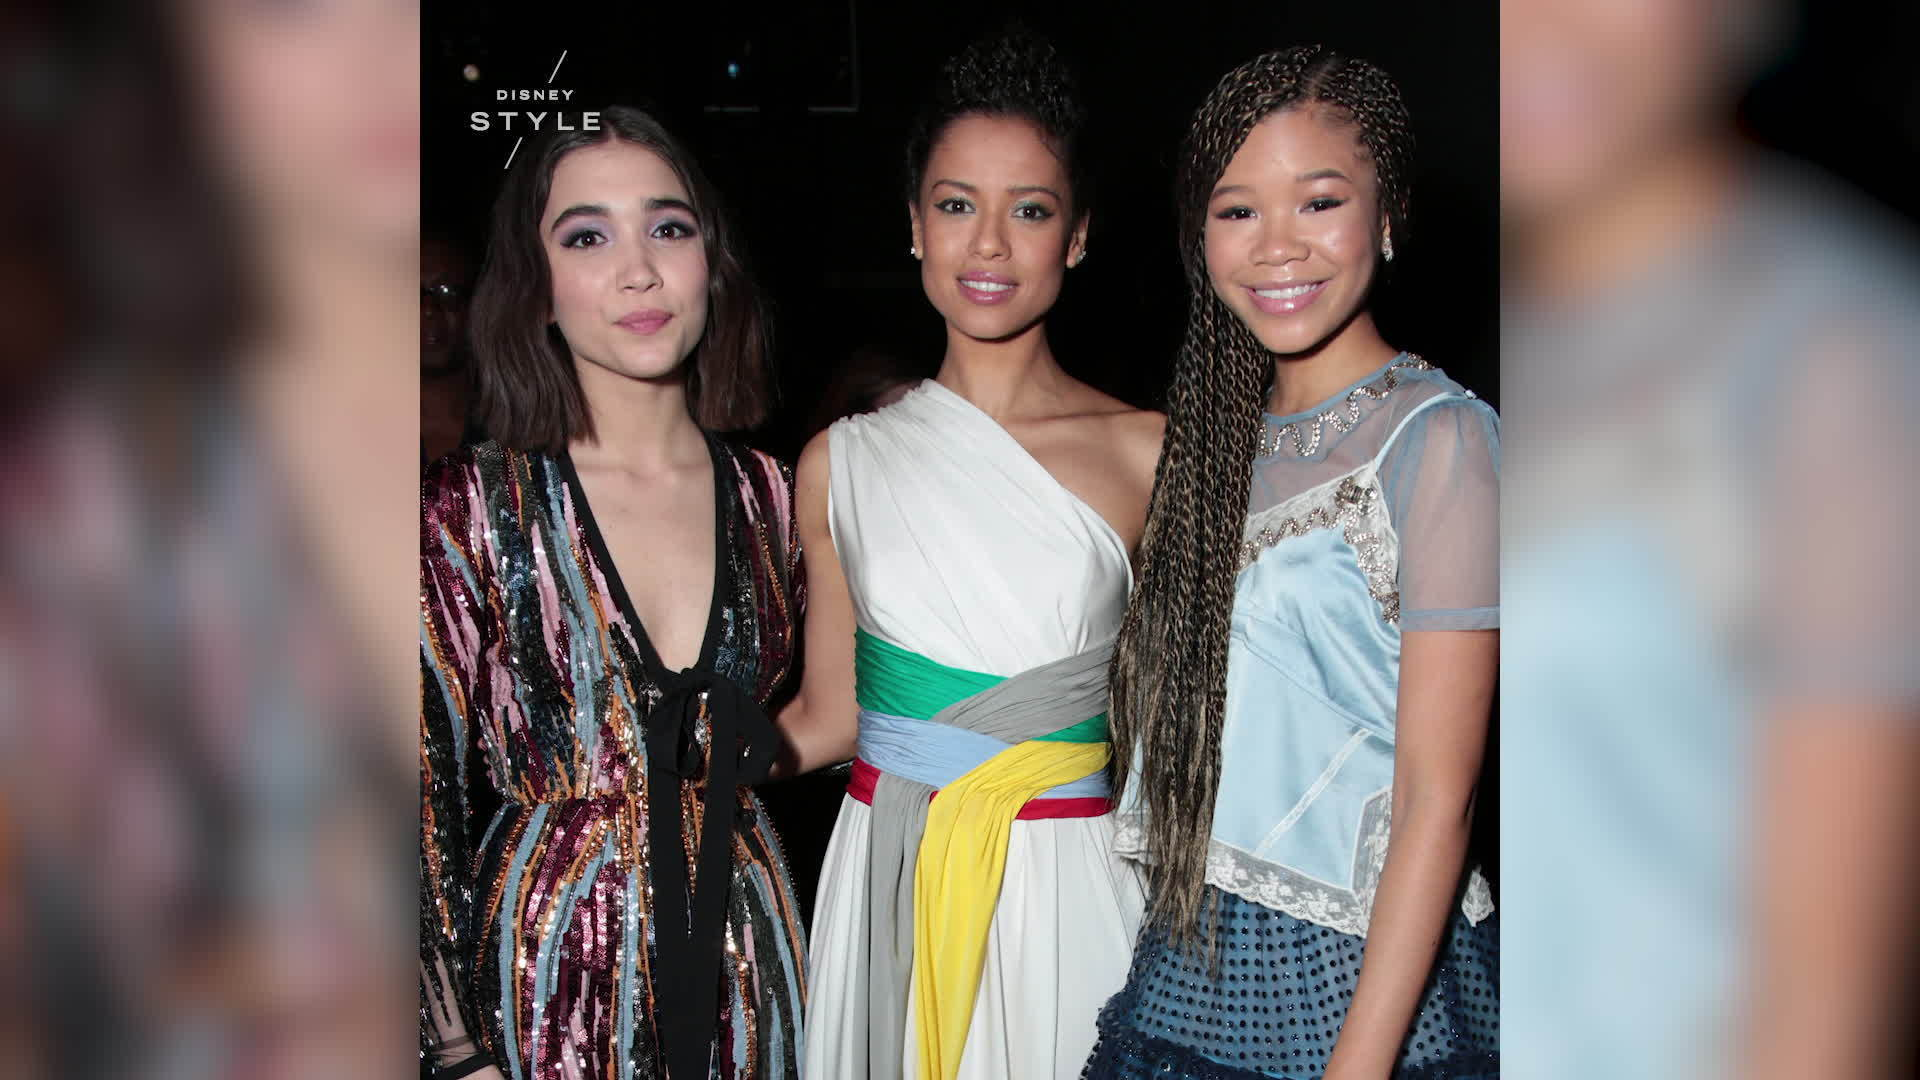 Stylish Looks From the World Premiere of A Wrinkle in Time | News by Disney Style